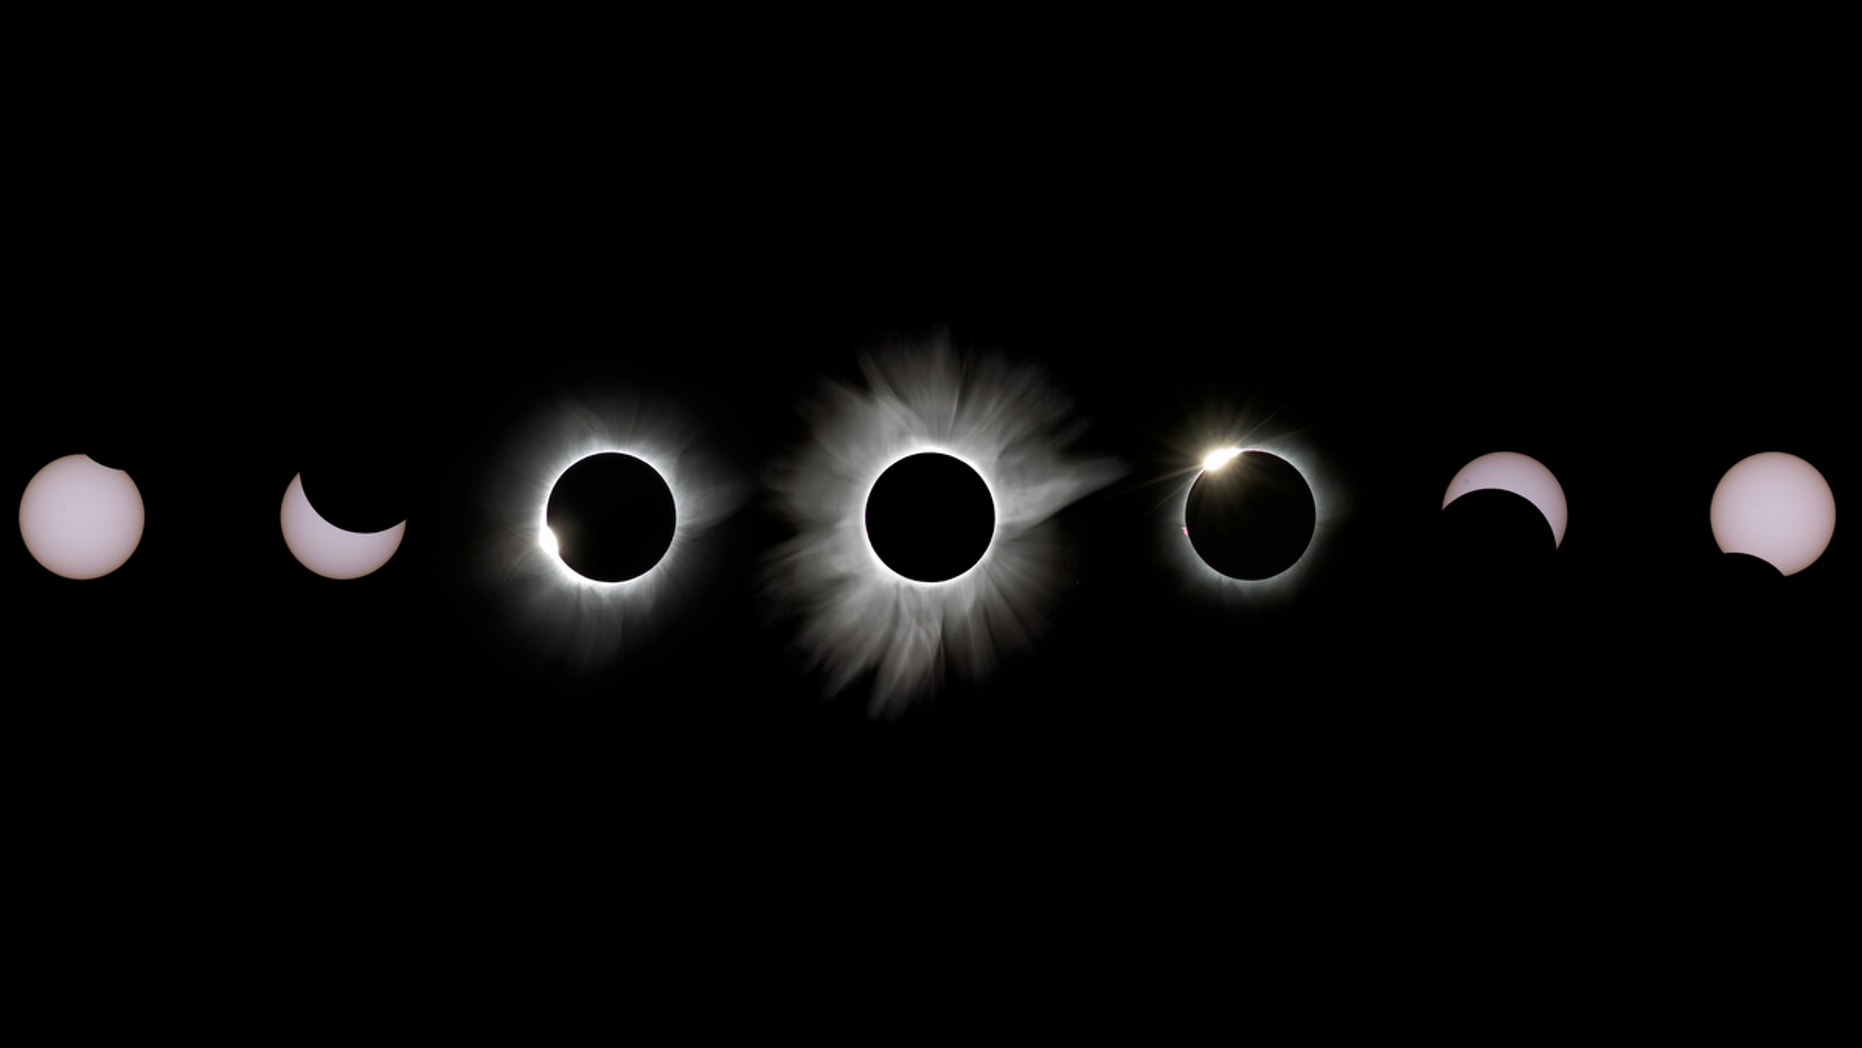 Total Solar Eclipse of March 2016 Composite Image